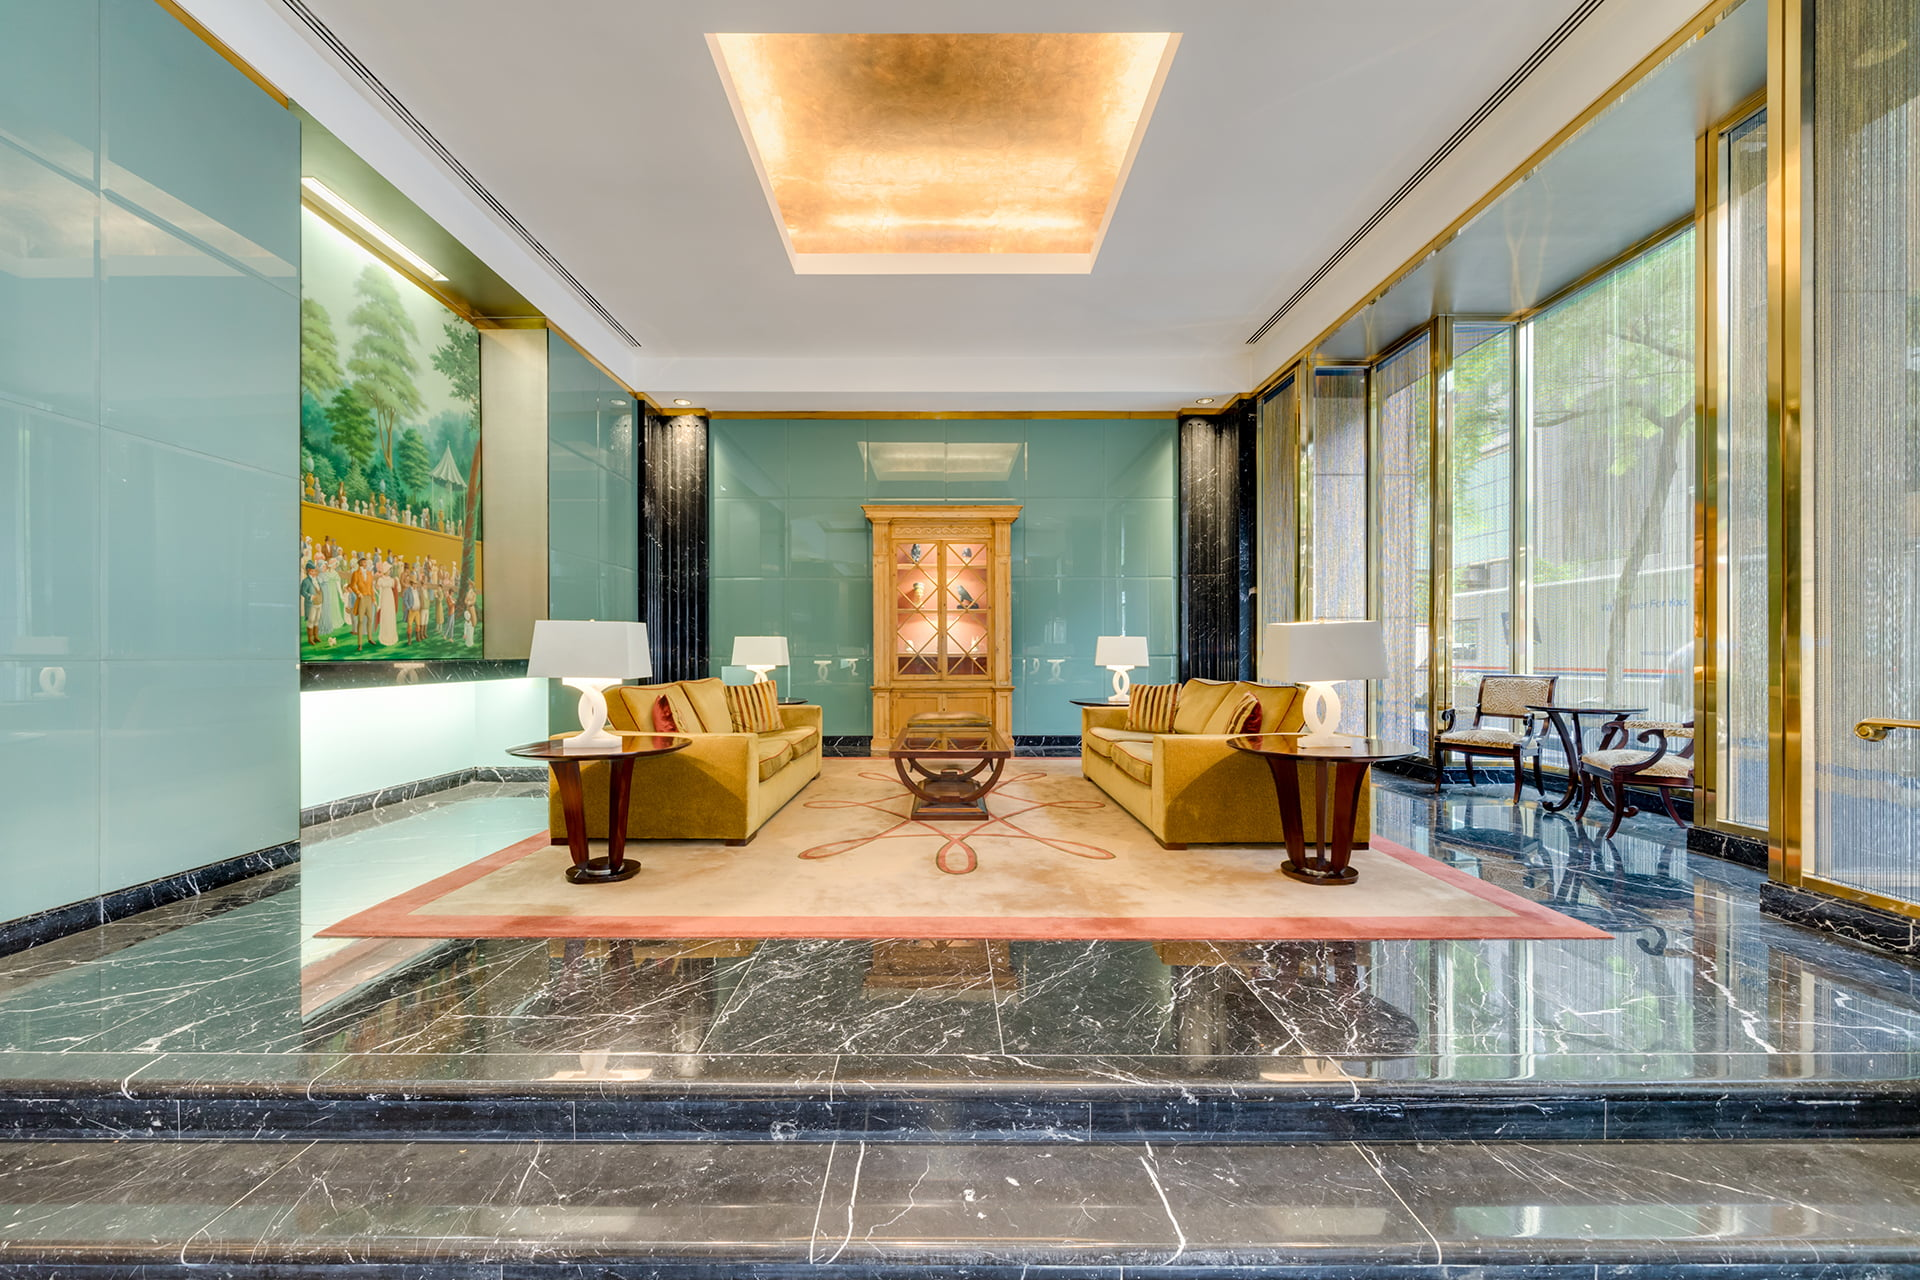 Lobby seating area at Symphony House.